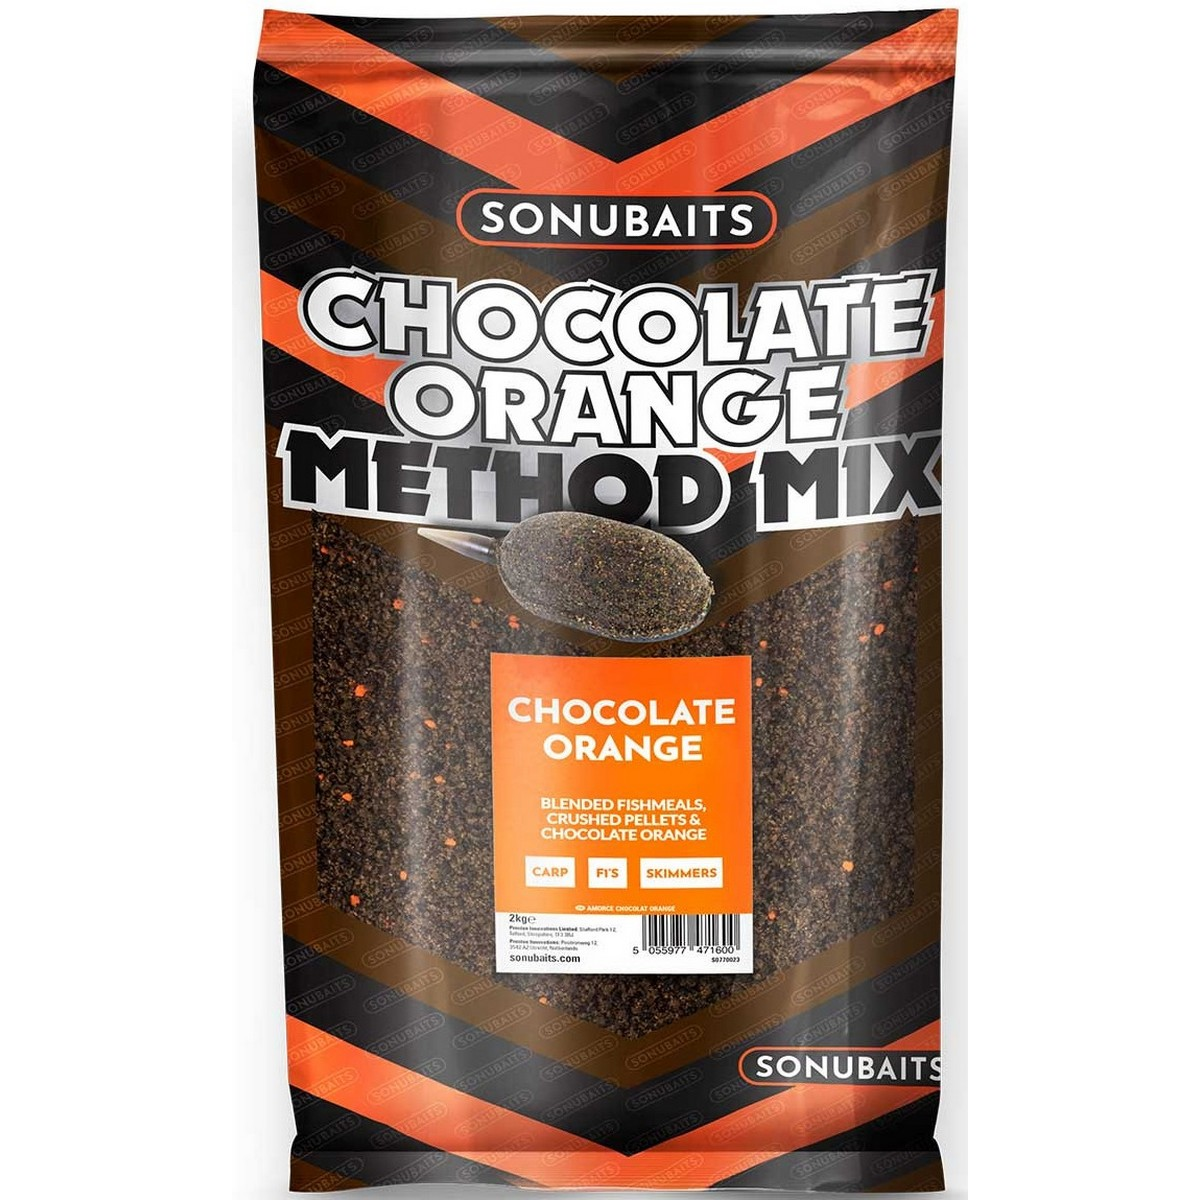 Sonubaits Chocolate Orange Method Mix Groundbait